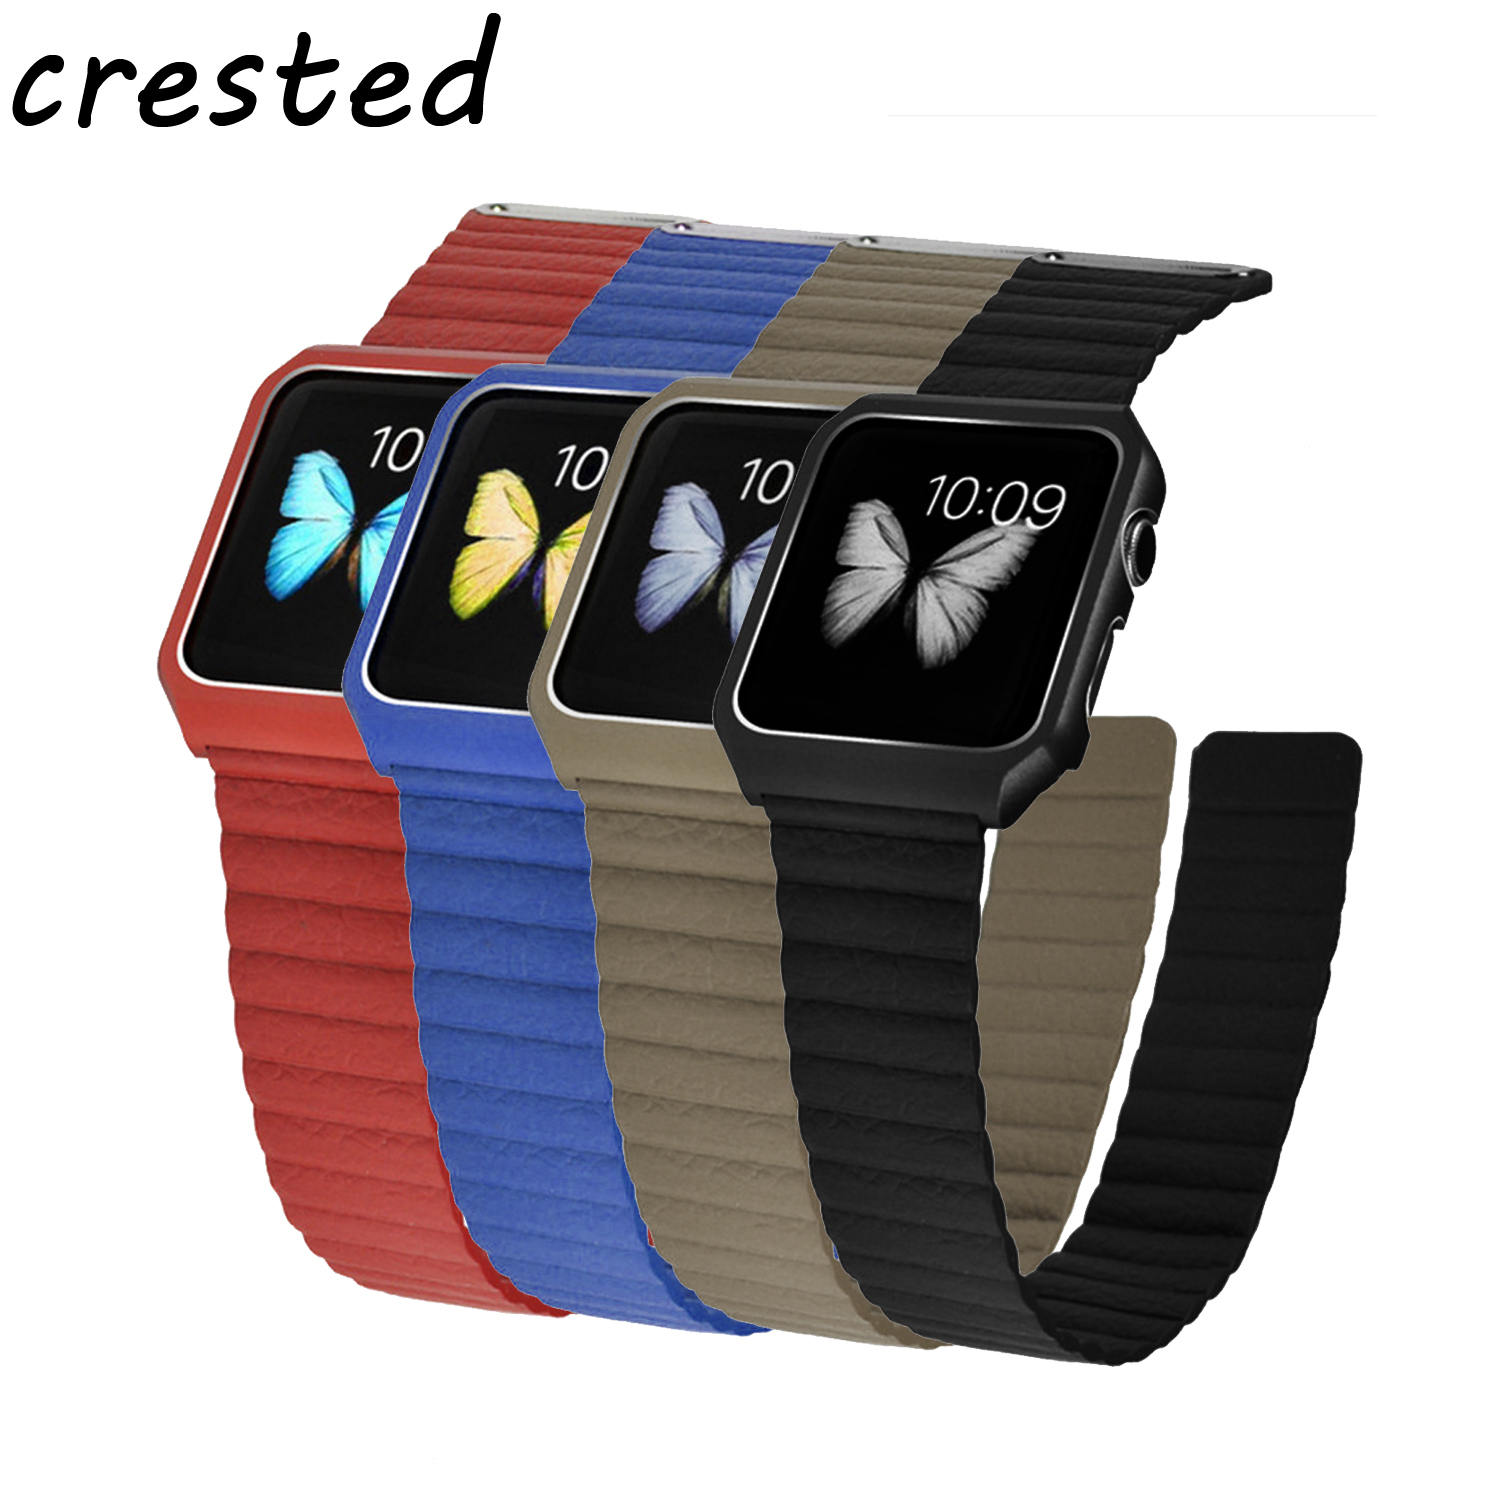 CRESTED Leather Loop strap for apple watch band 42 mm 38 mm & Stainless Steel Metal Case Magnetic Leather Band for iWatch 3/2/1 crested leather strap for apple watch band 42 mm 38 mm watch accessories strap band wrist watch bracelet for iwatch series 3 2 1